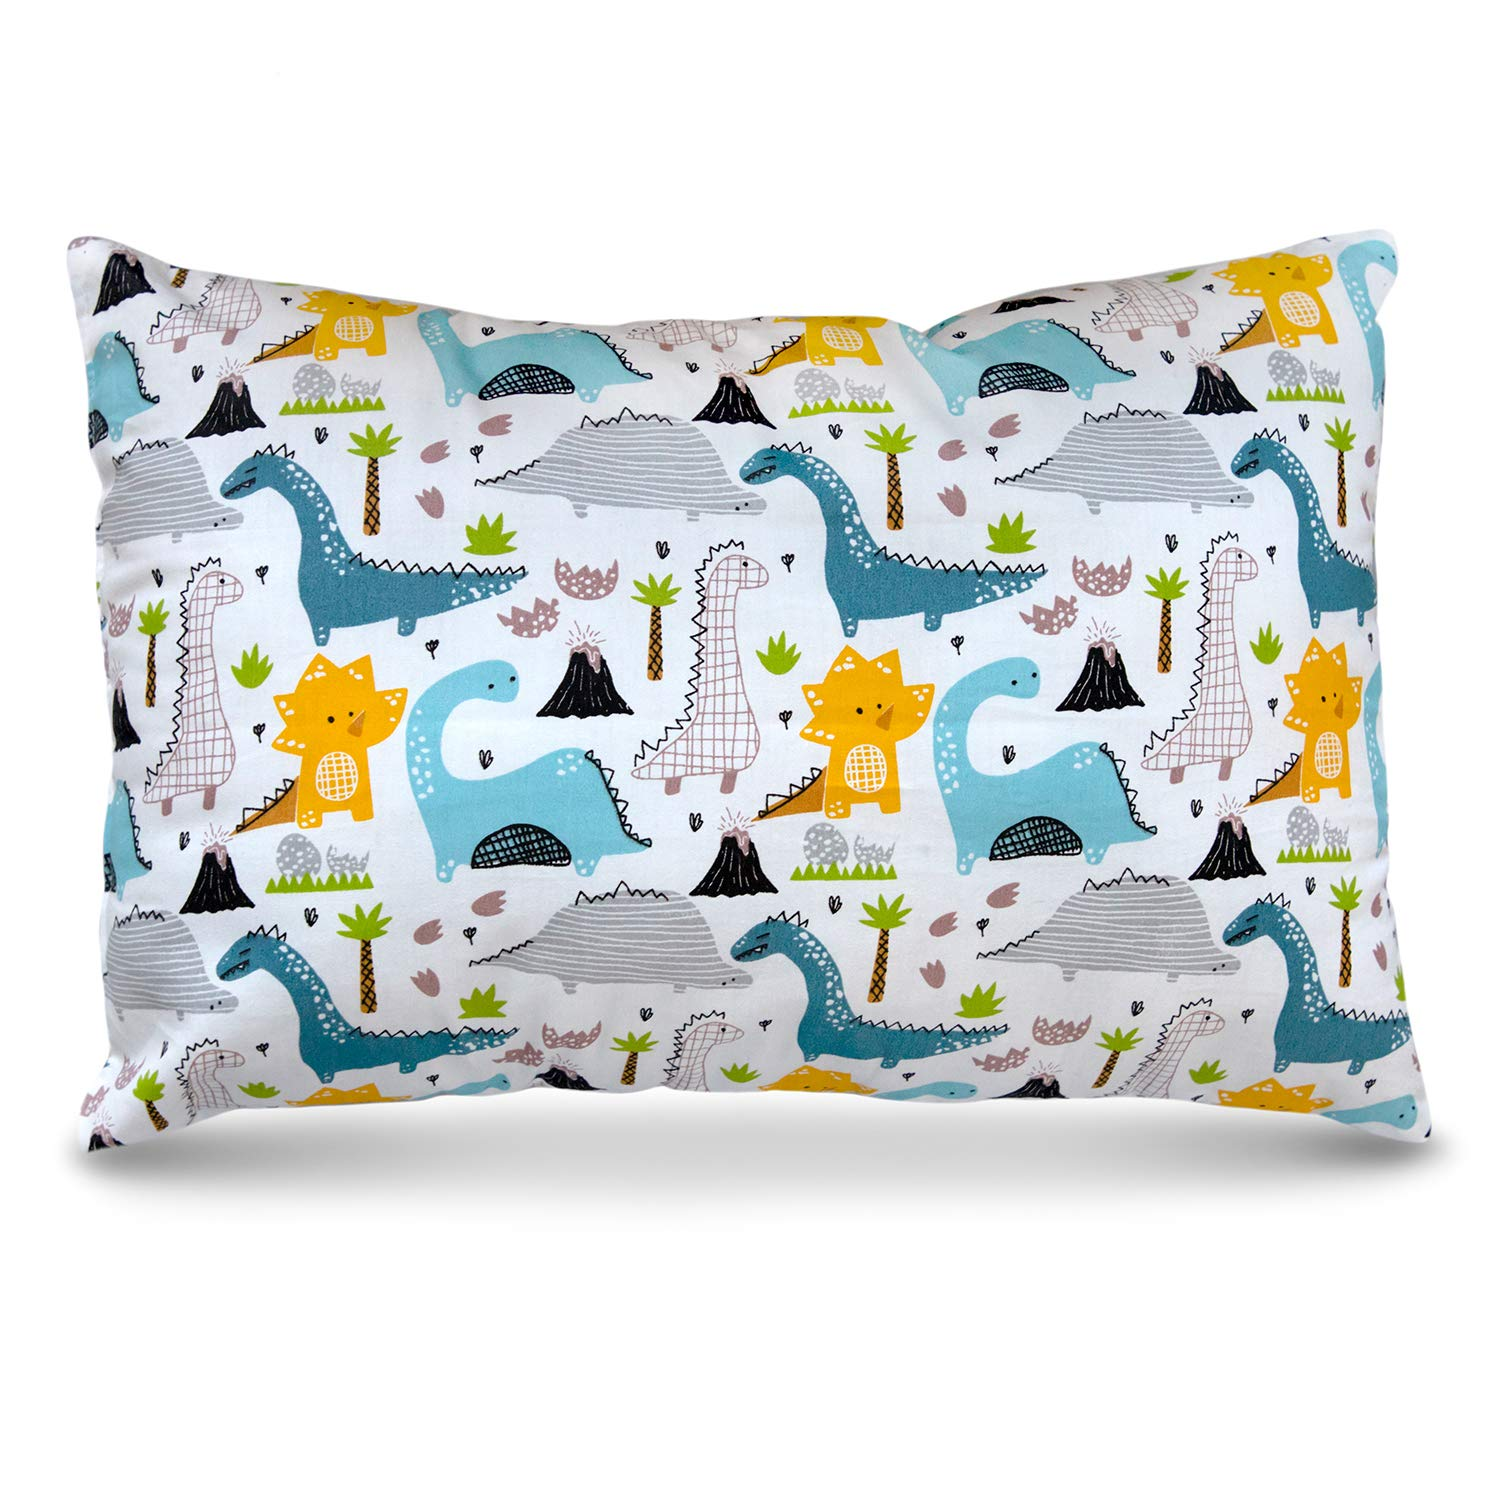 PharMeDoc Toddler Pillow for Kids 14 x 19 inch - No Pillowcase Needed - Machine Washable by PharMeDoc